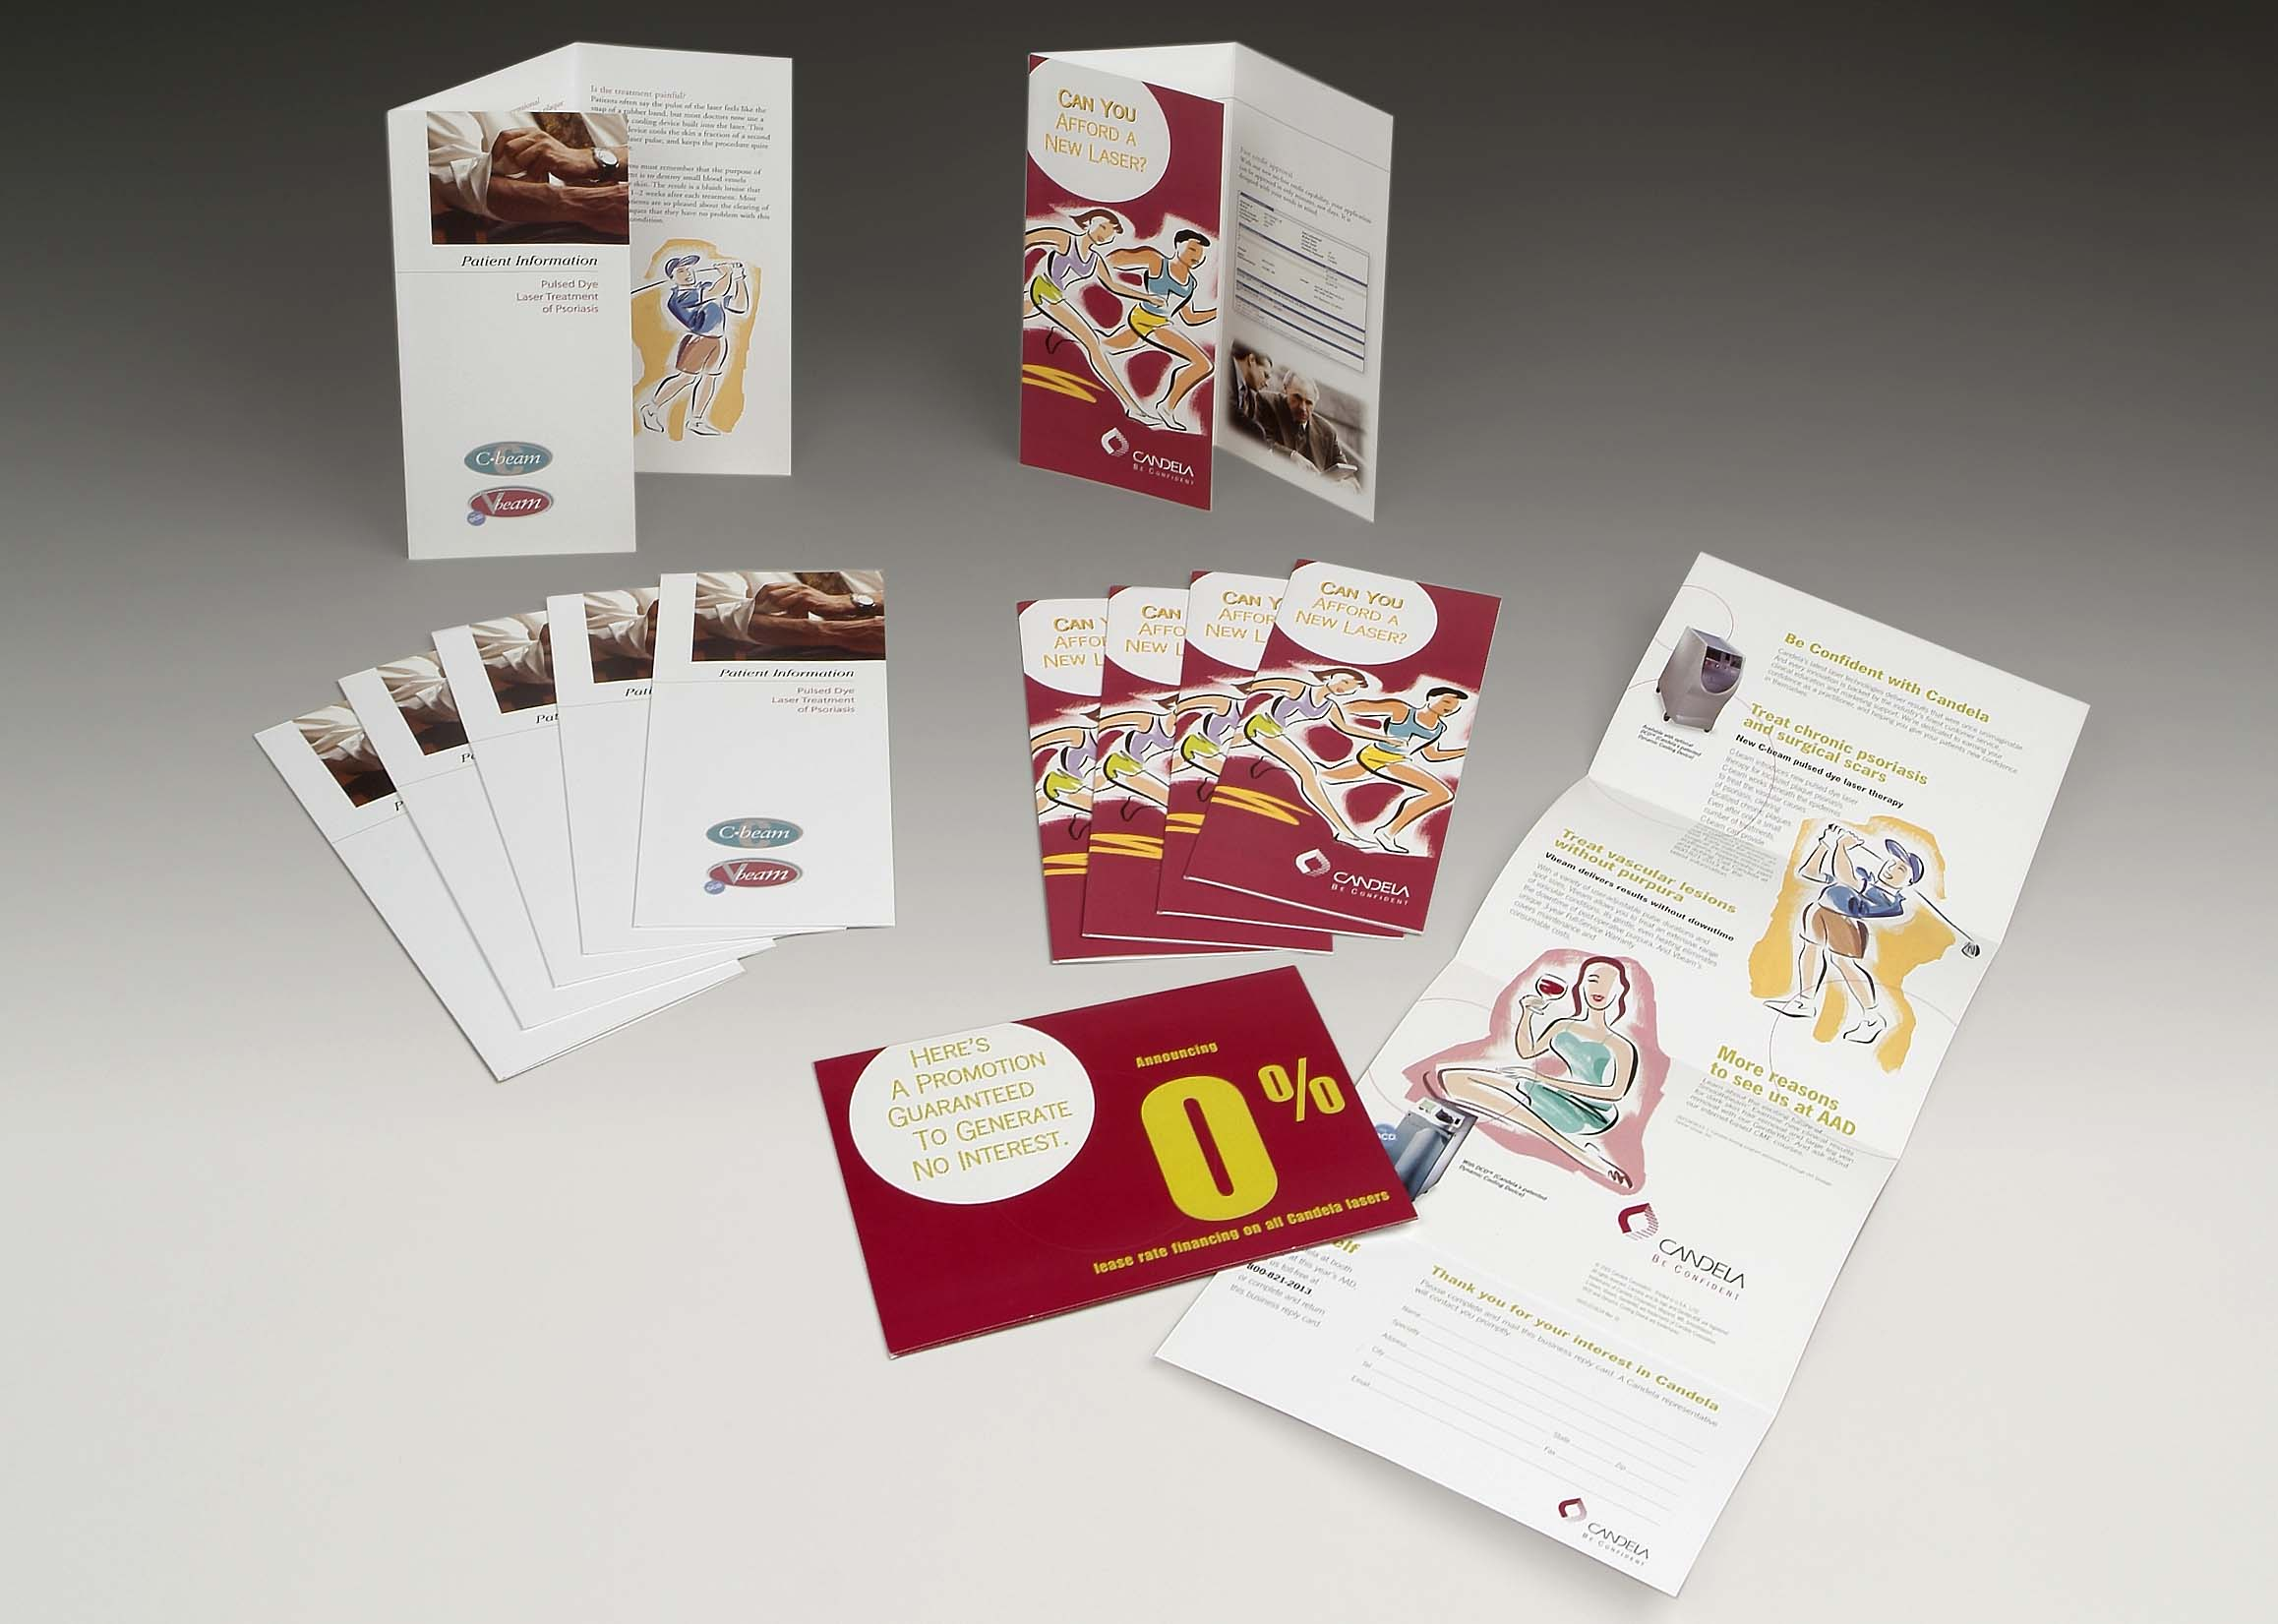 Promotional_Collateral_materials